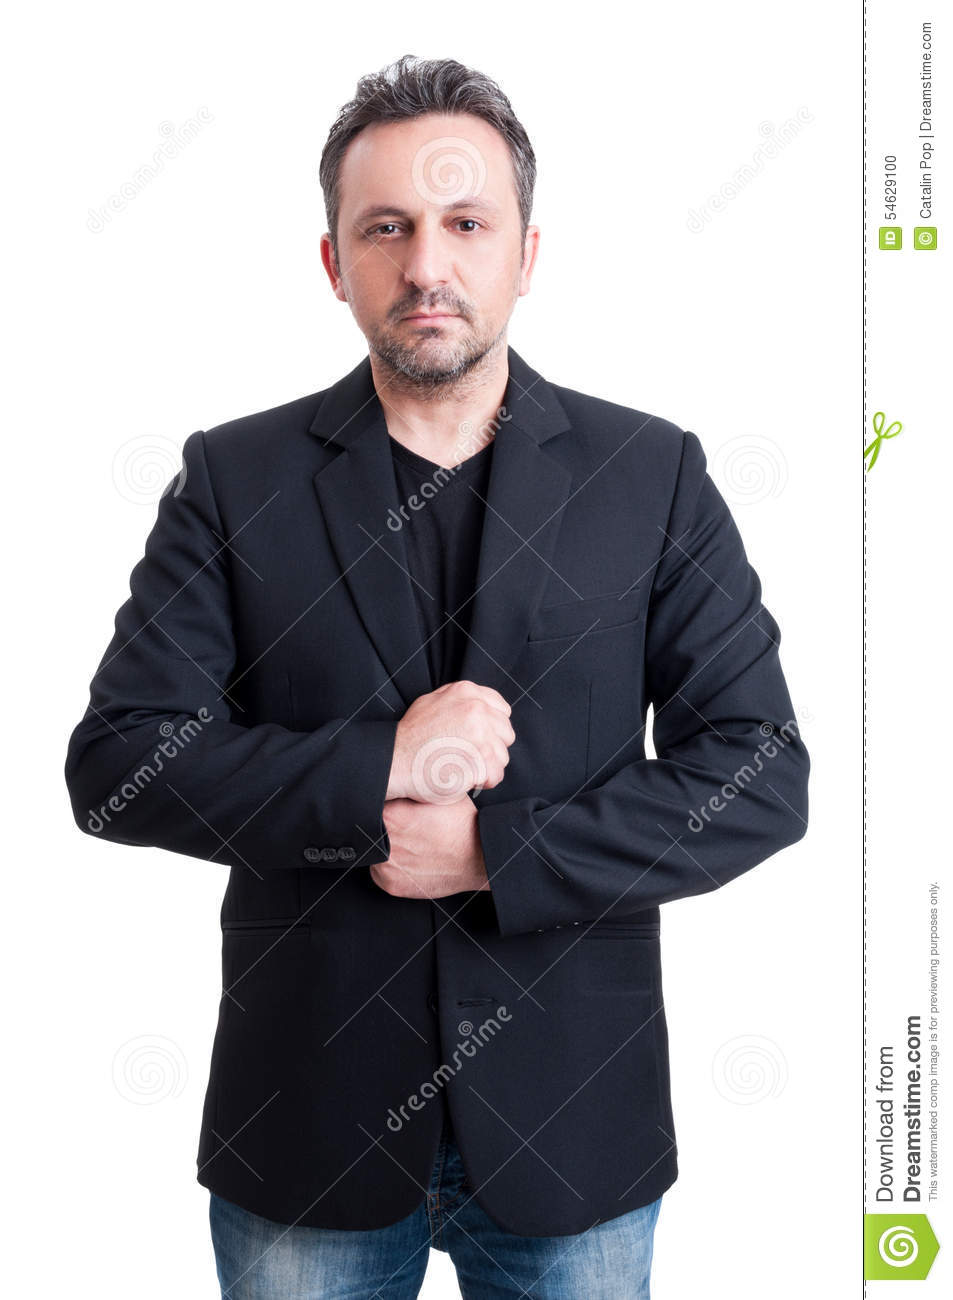 Casual Man Wearing Suit Jacket And Black T-shirt Stock Photo ...